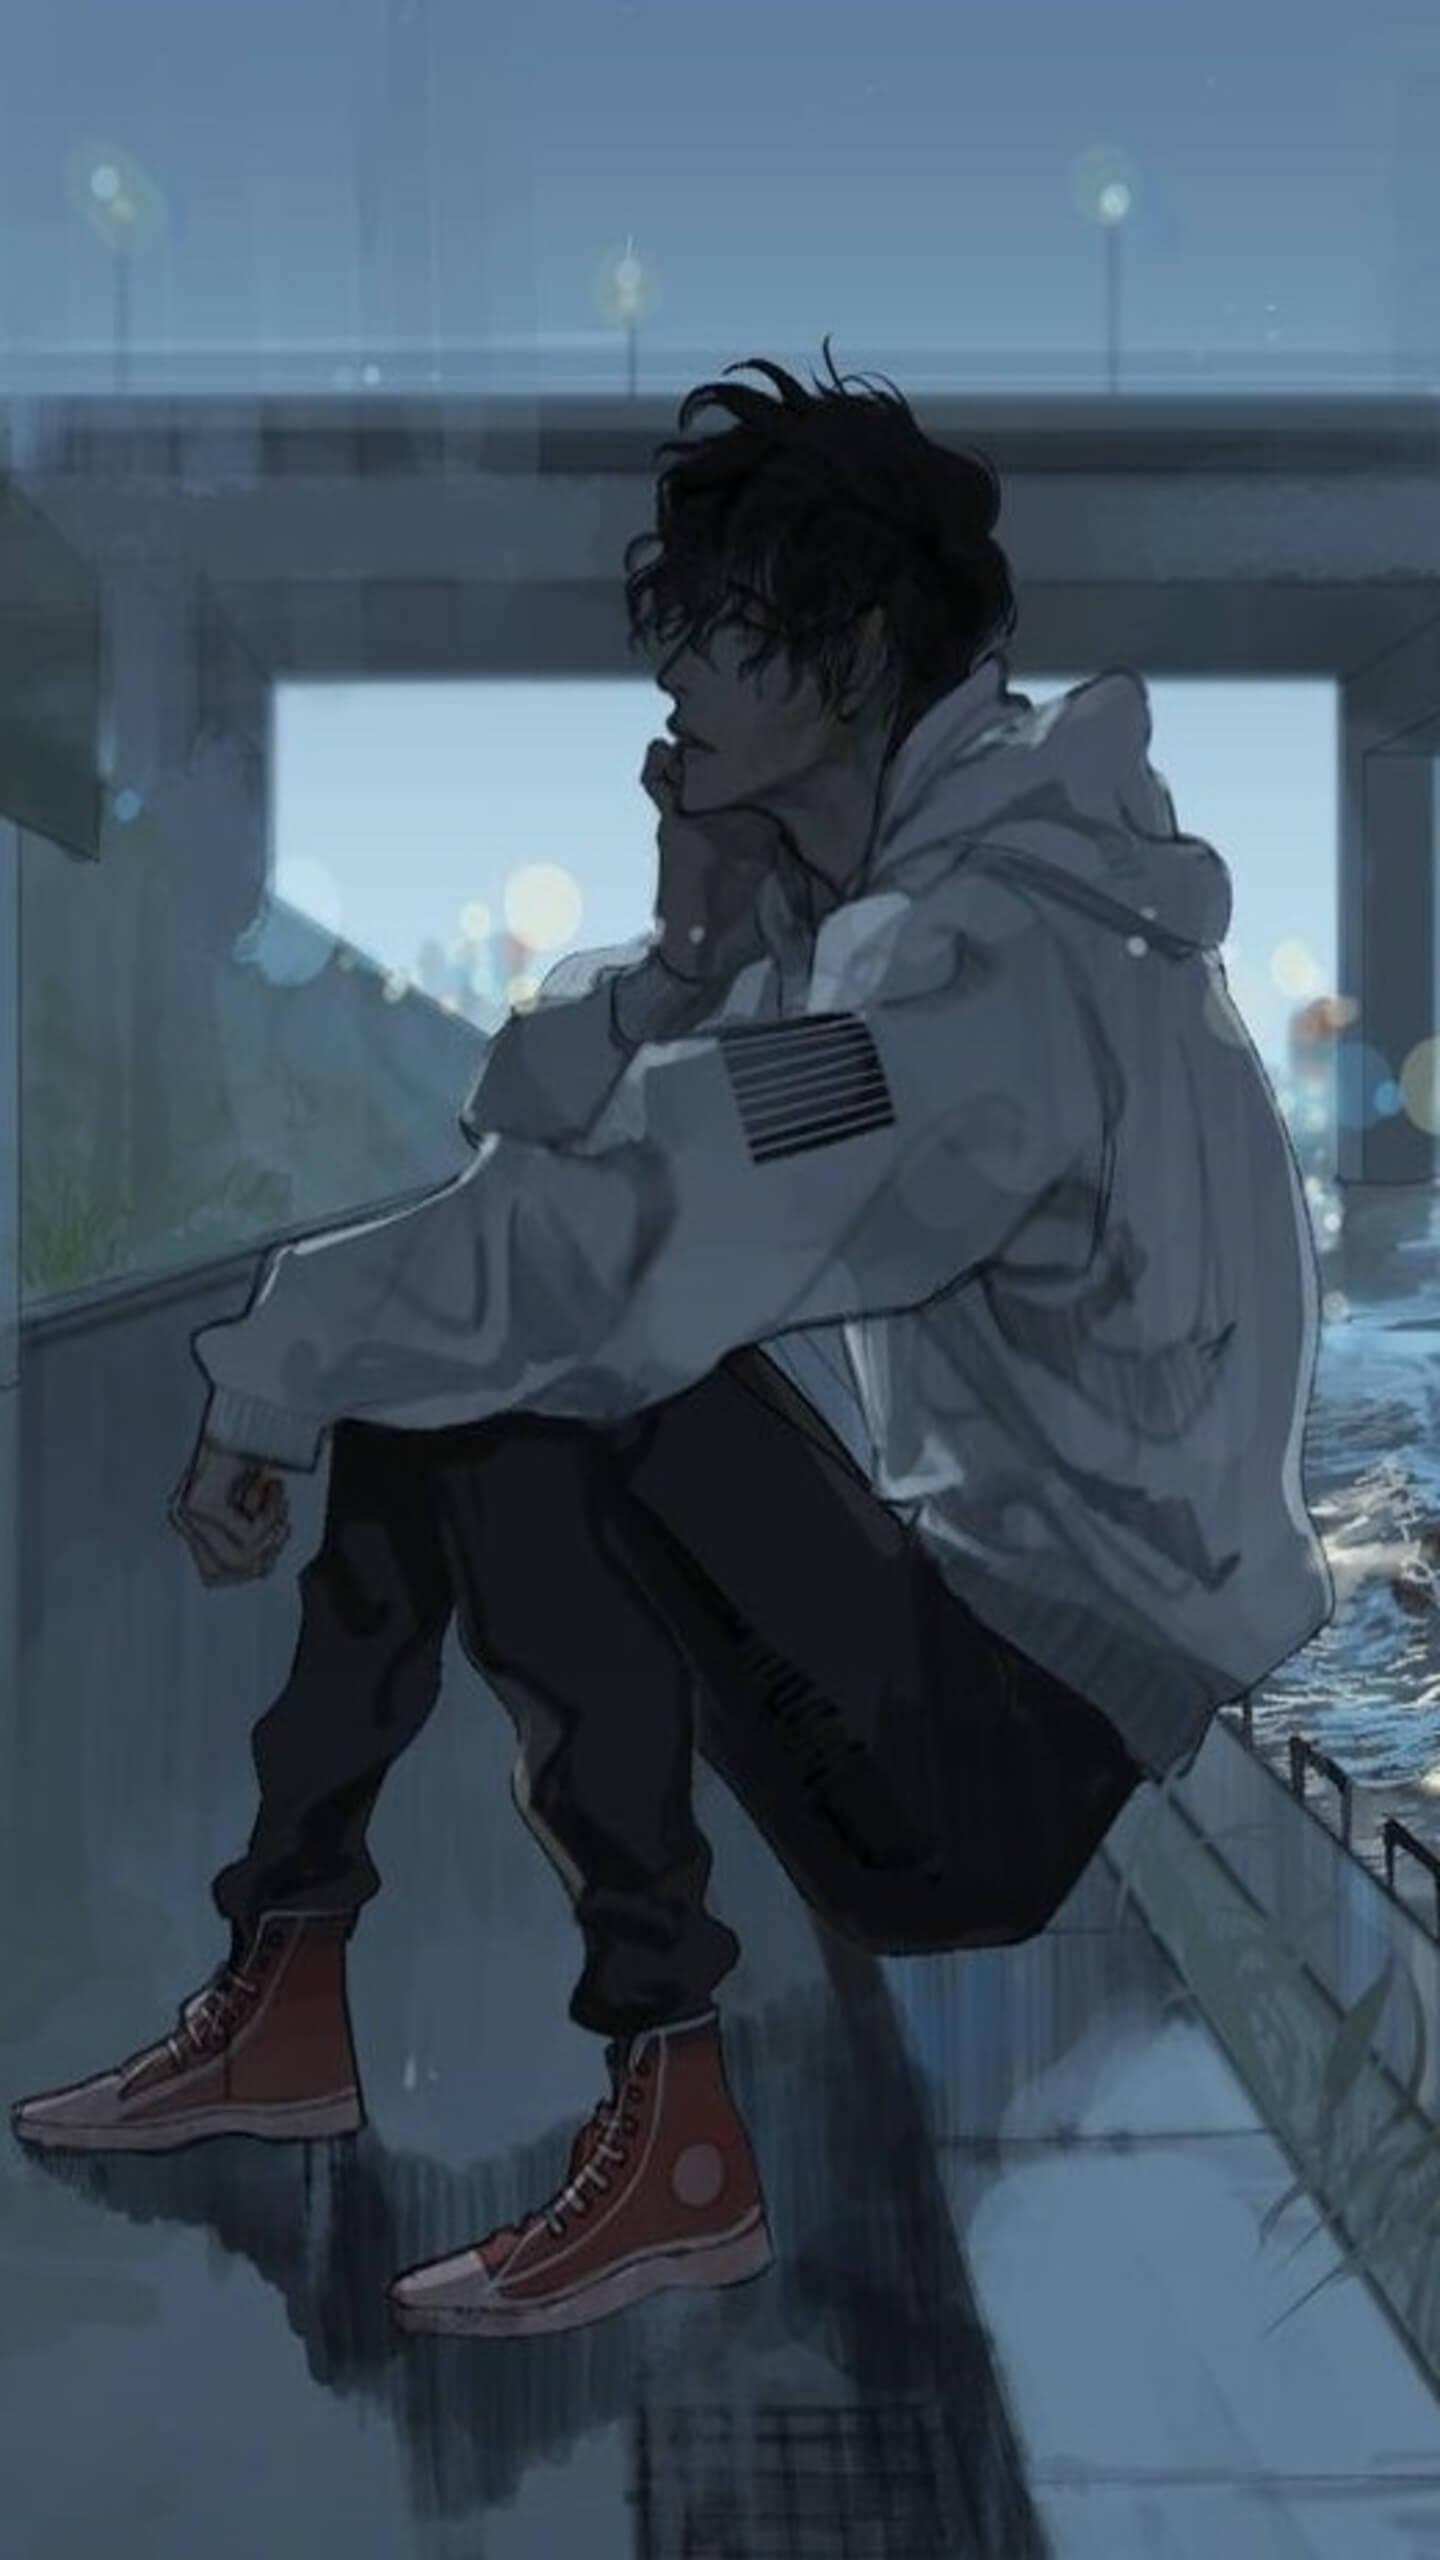 Sad Anime Wallpapers for Android   APK Download 1440x2560